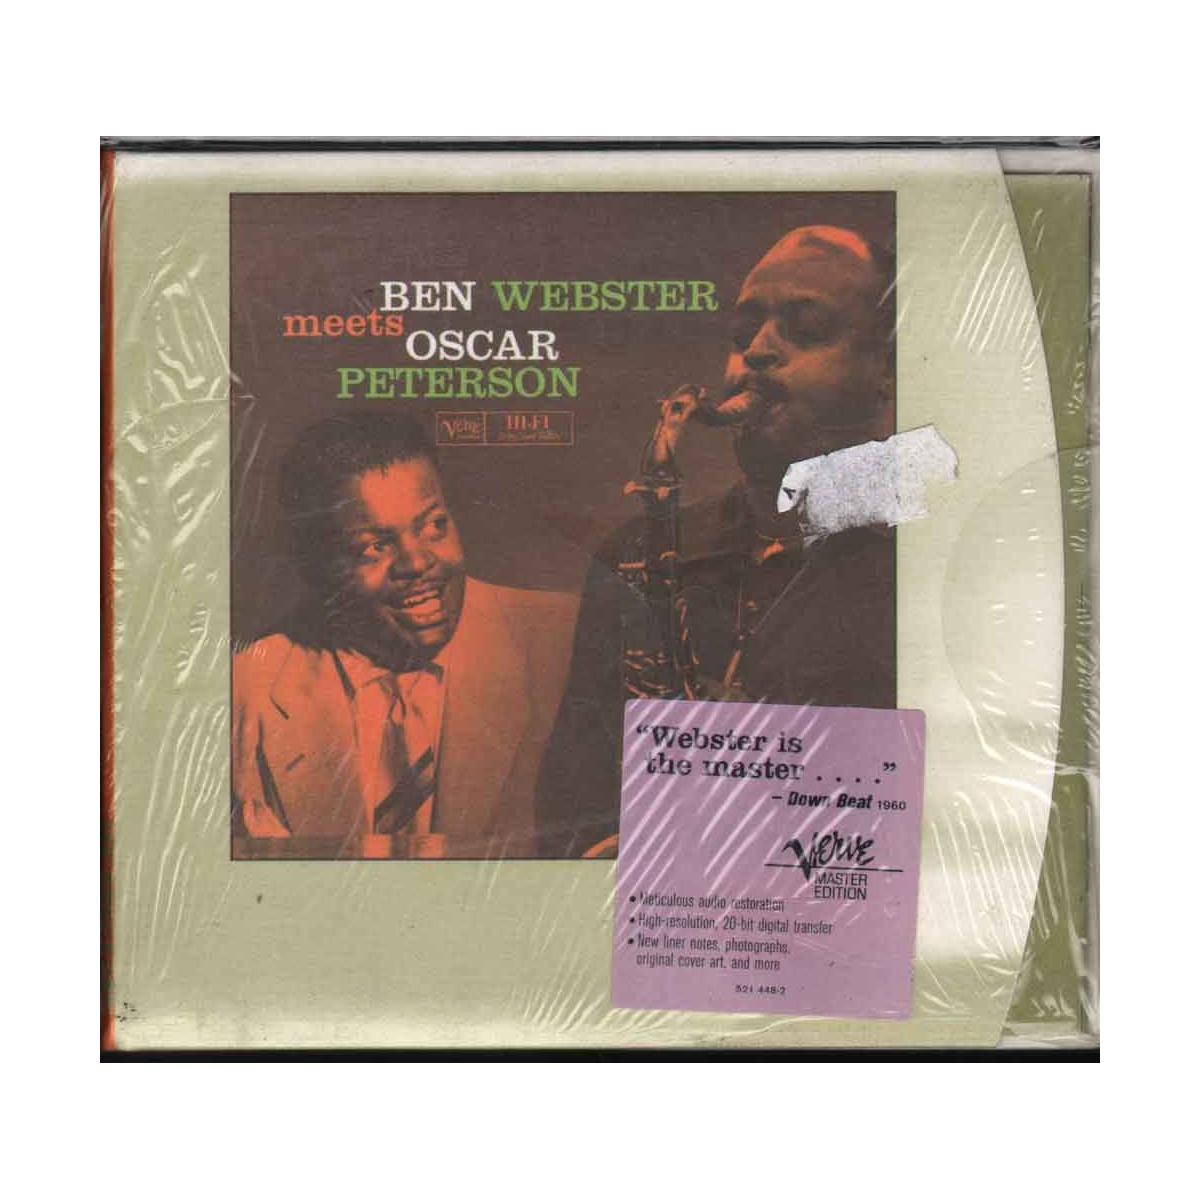 Ben Webster Meets Oscar Peterson CD Omonimo Nuovo Sigillato 0731452144829